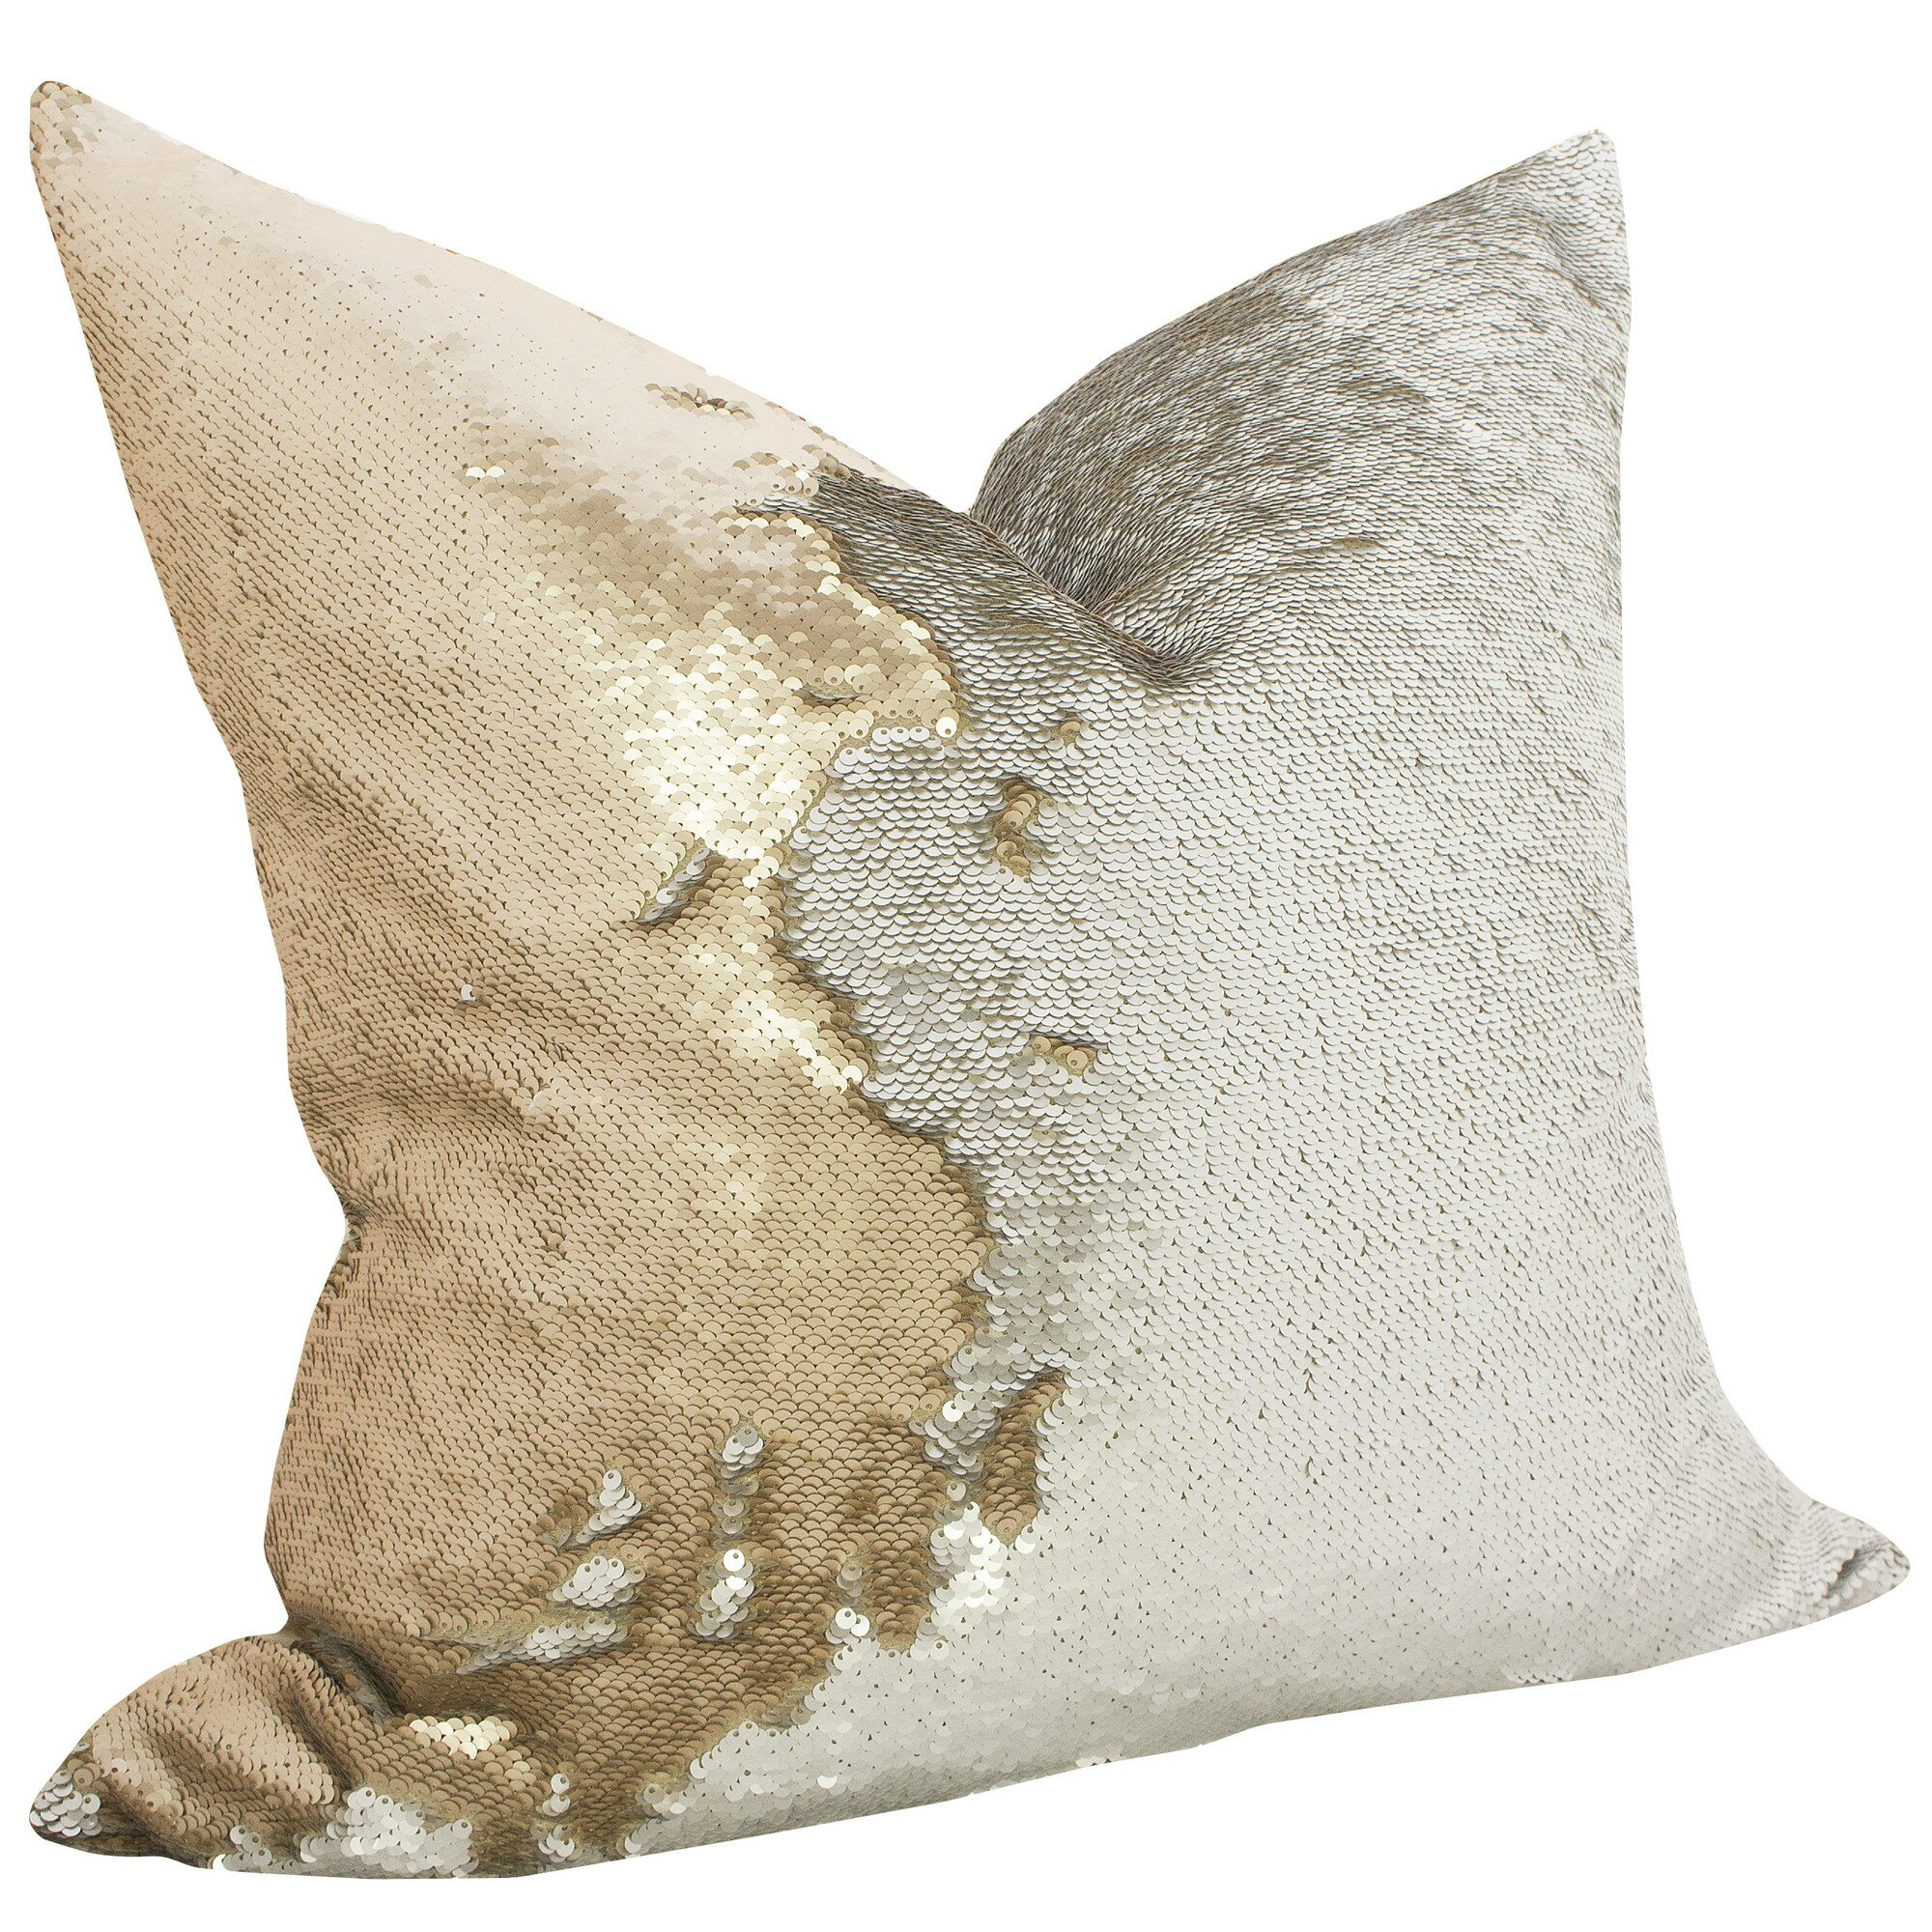 Sequin Elephant Throw Pillow : TheWatsonShop Mermaid Sequin Throw Pillow & Reviews Wayfair